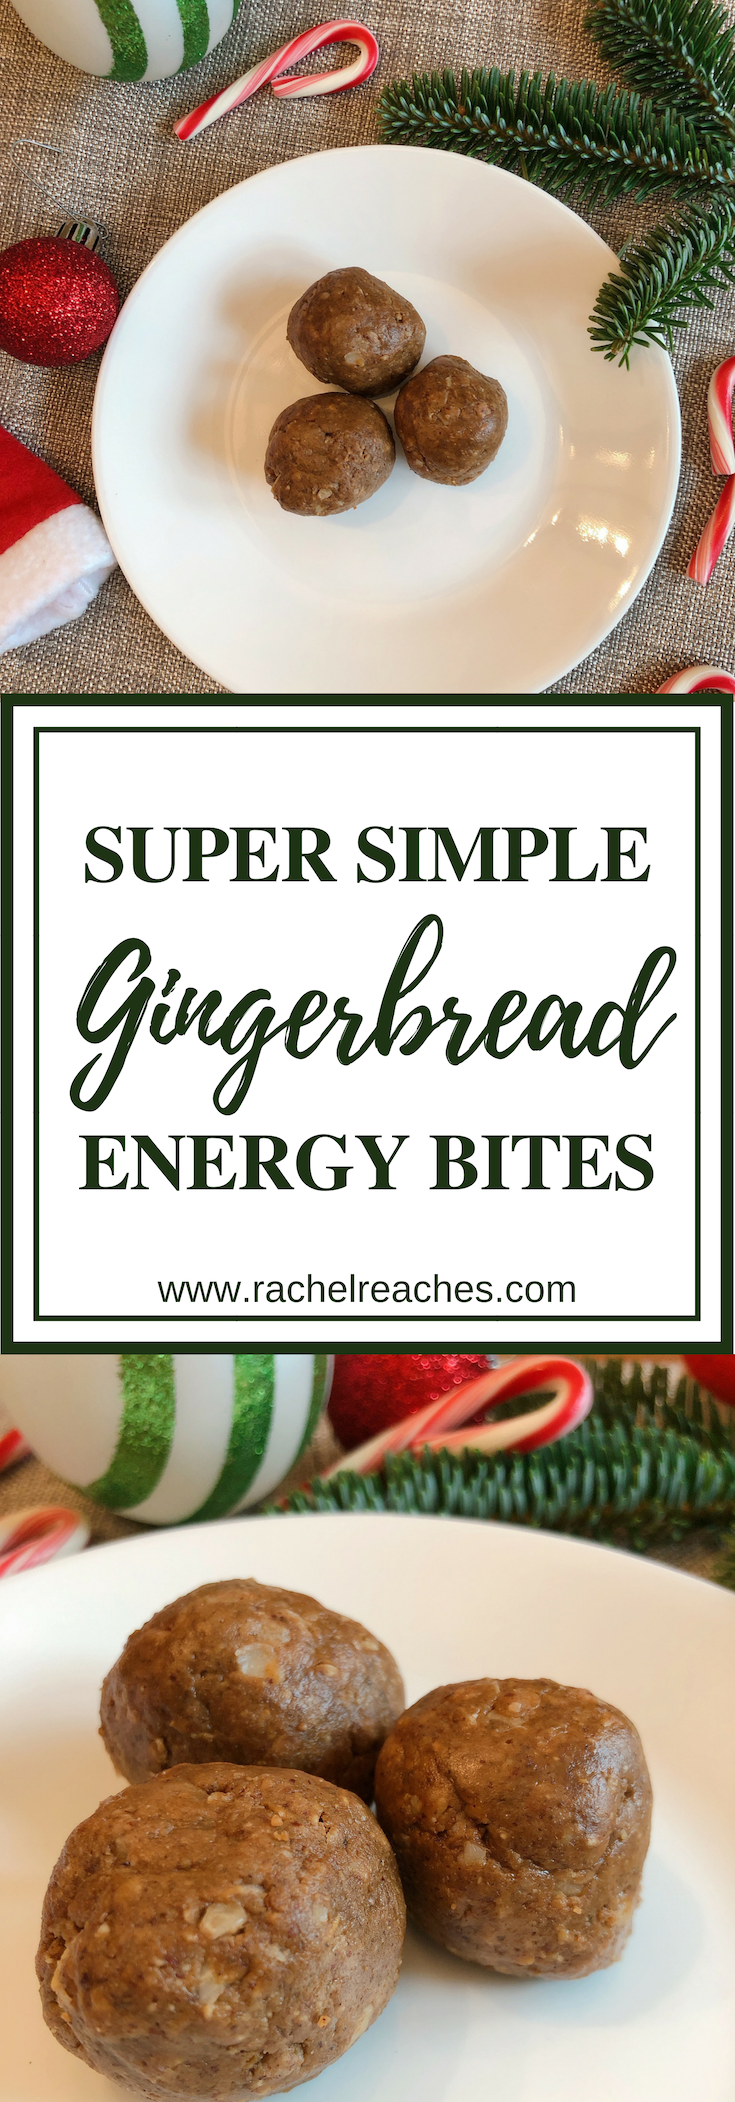 Gingerbread Energy Bites Pin - Healthy Eating (1).png